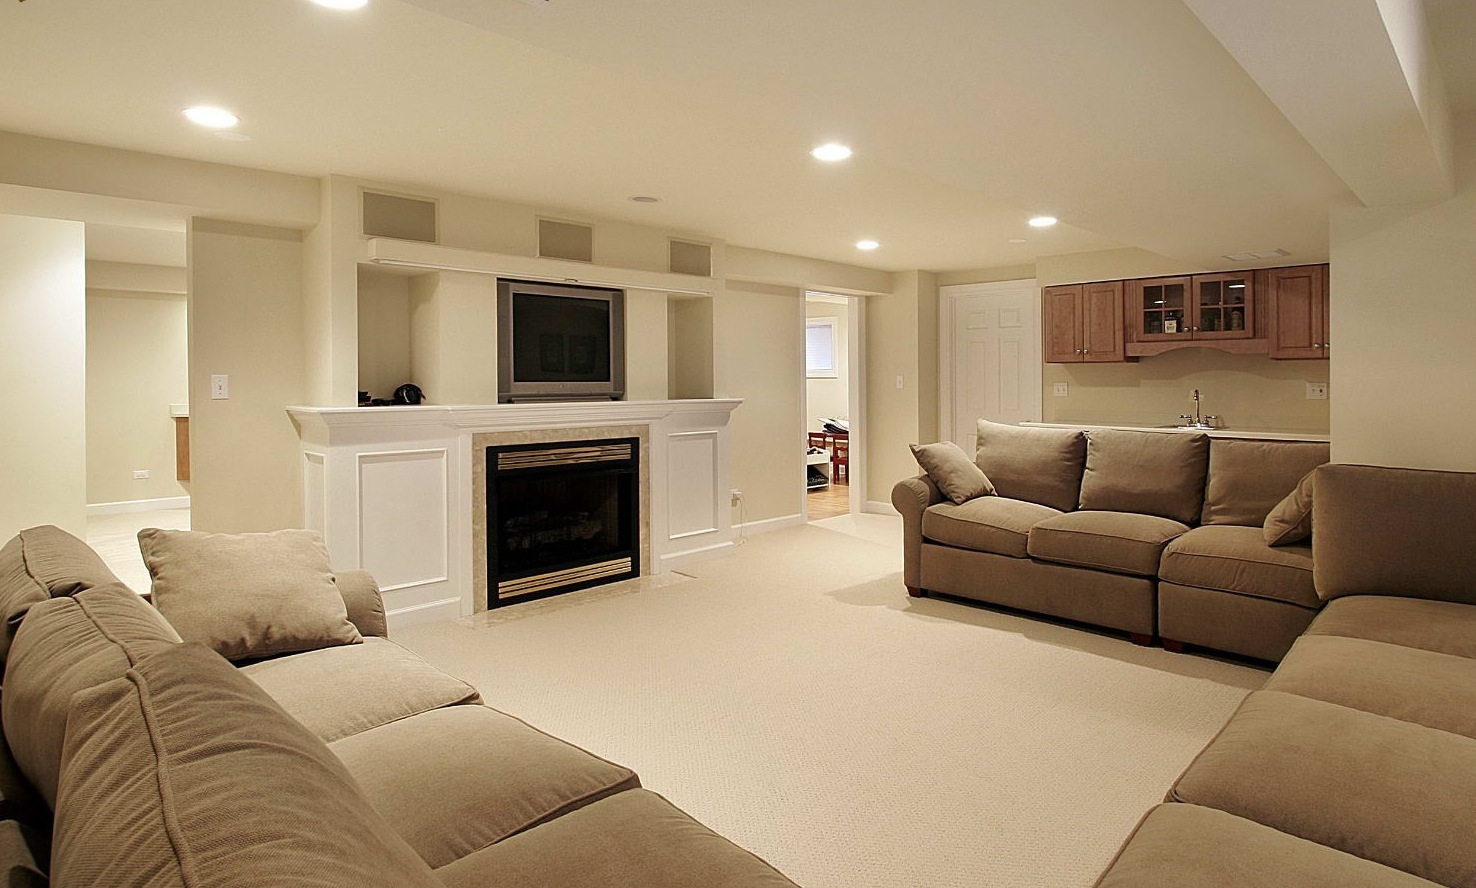 Living Room Renovation Ideas Delectable 30 Basement Remodeling Ideas & Inspiration Design Ideas